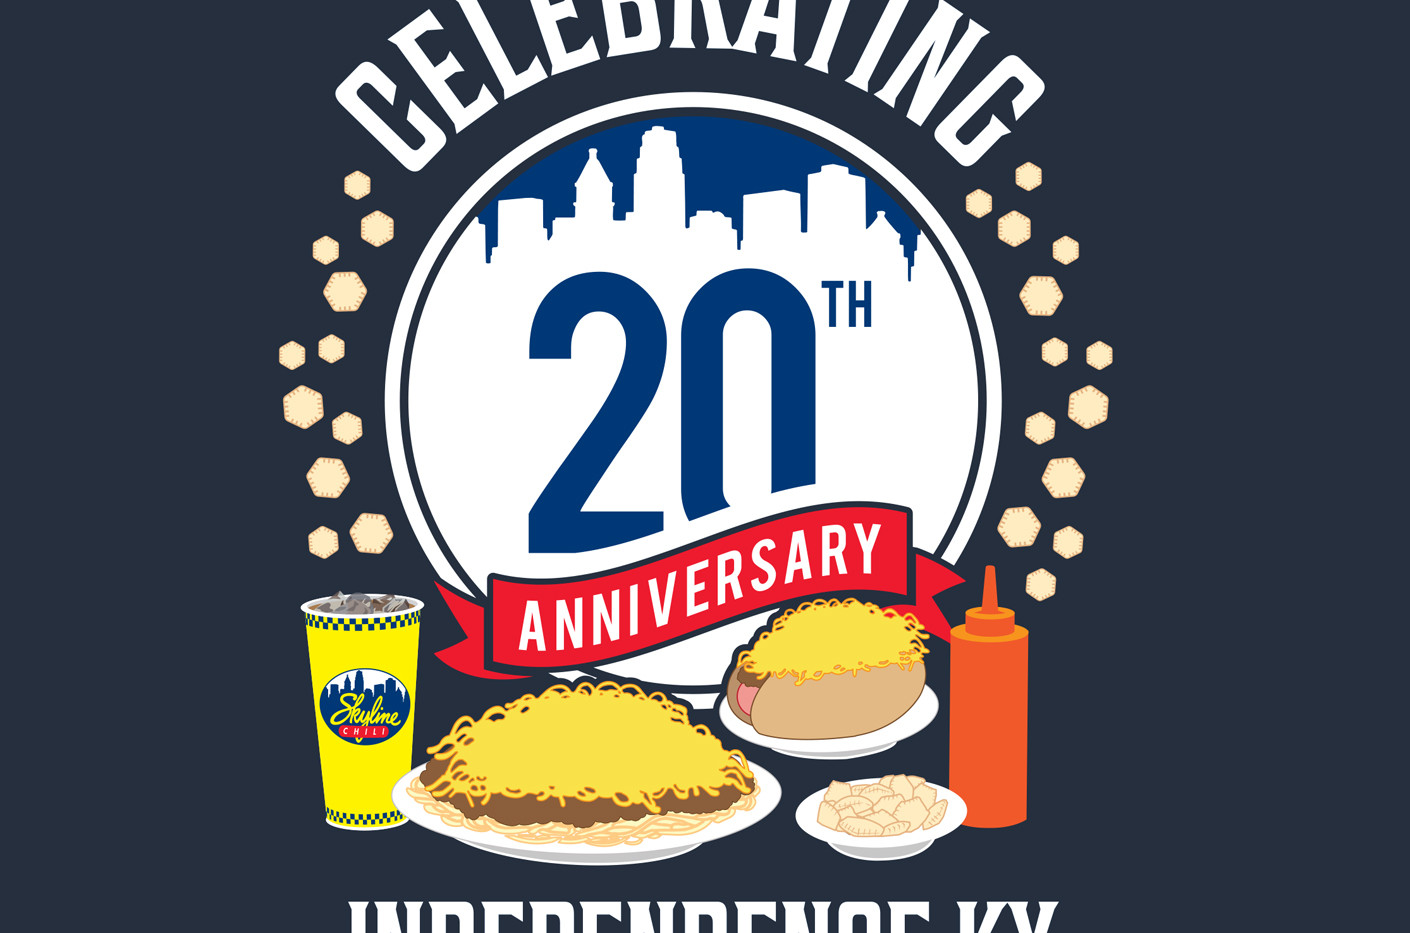 20th Anniversary T Shirt Independence.jp